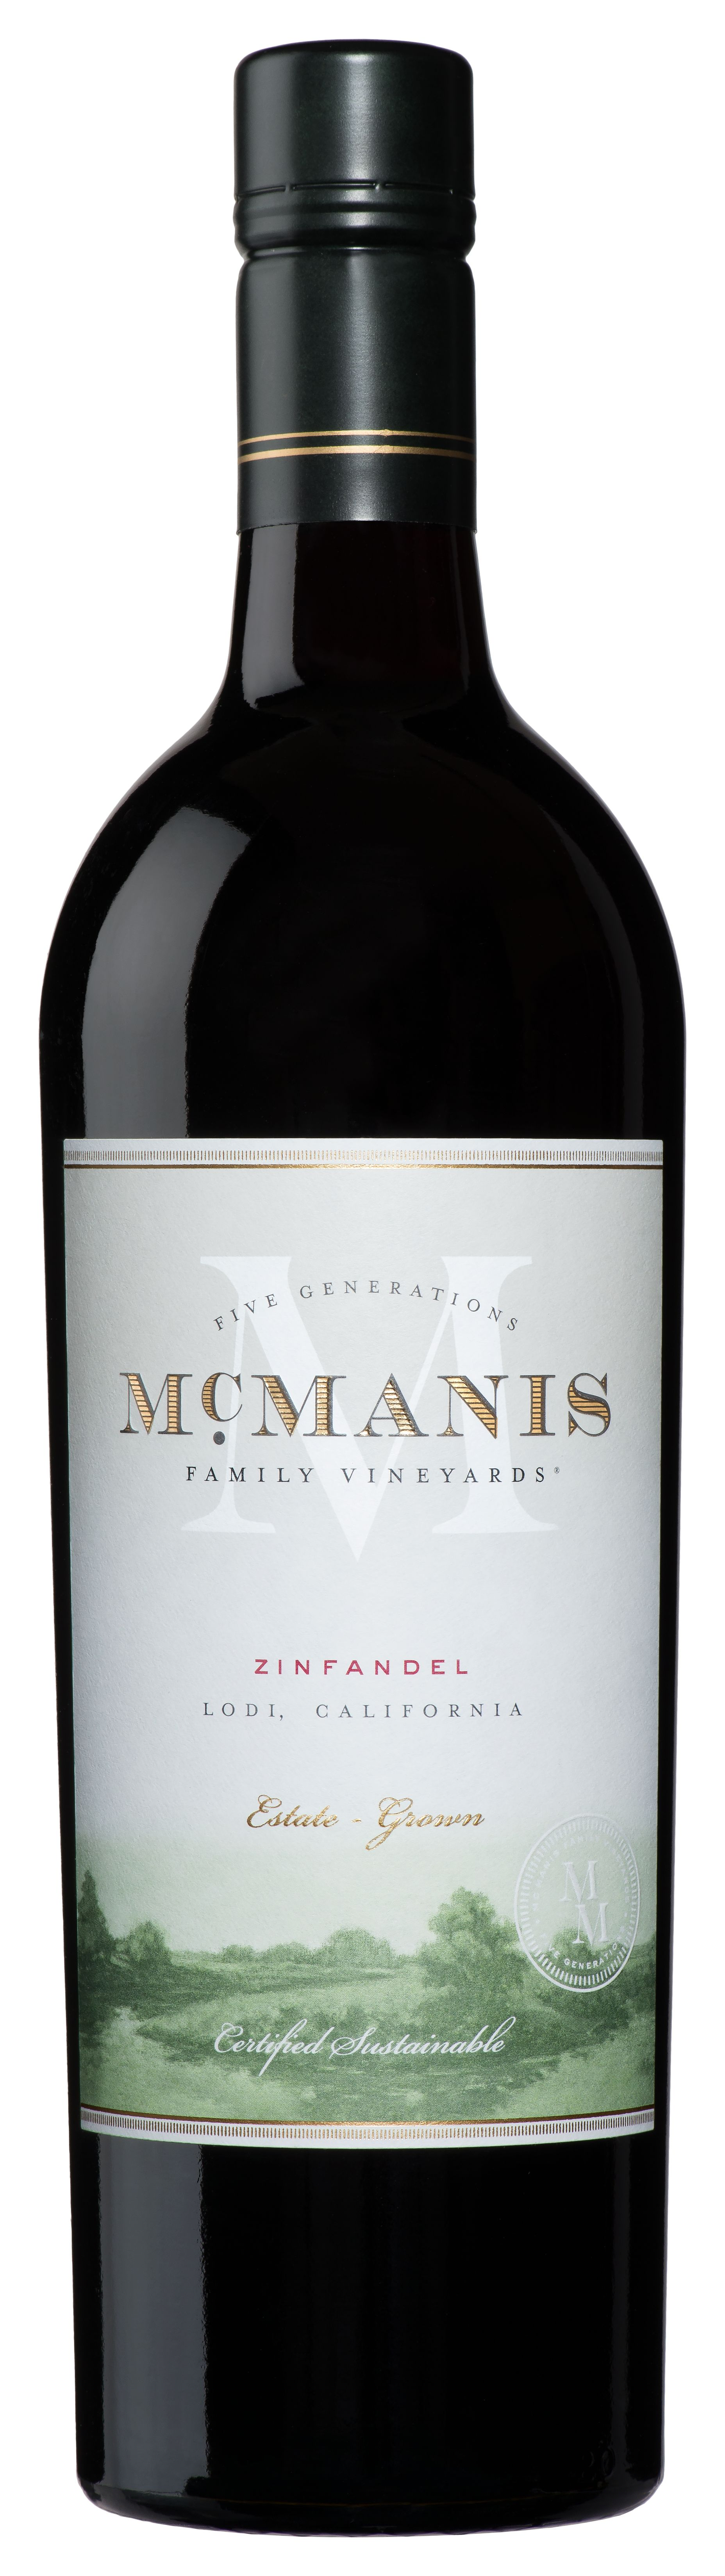 McManis Family Vineyards Zinfandel 2018  Front Bottle Shot